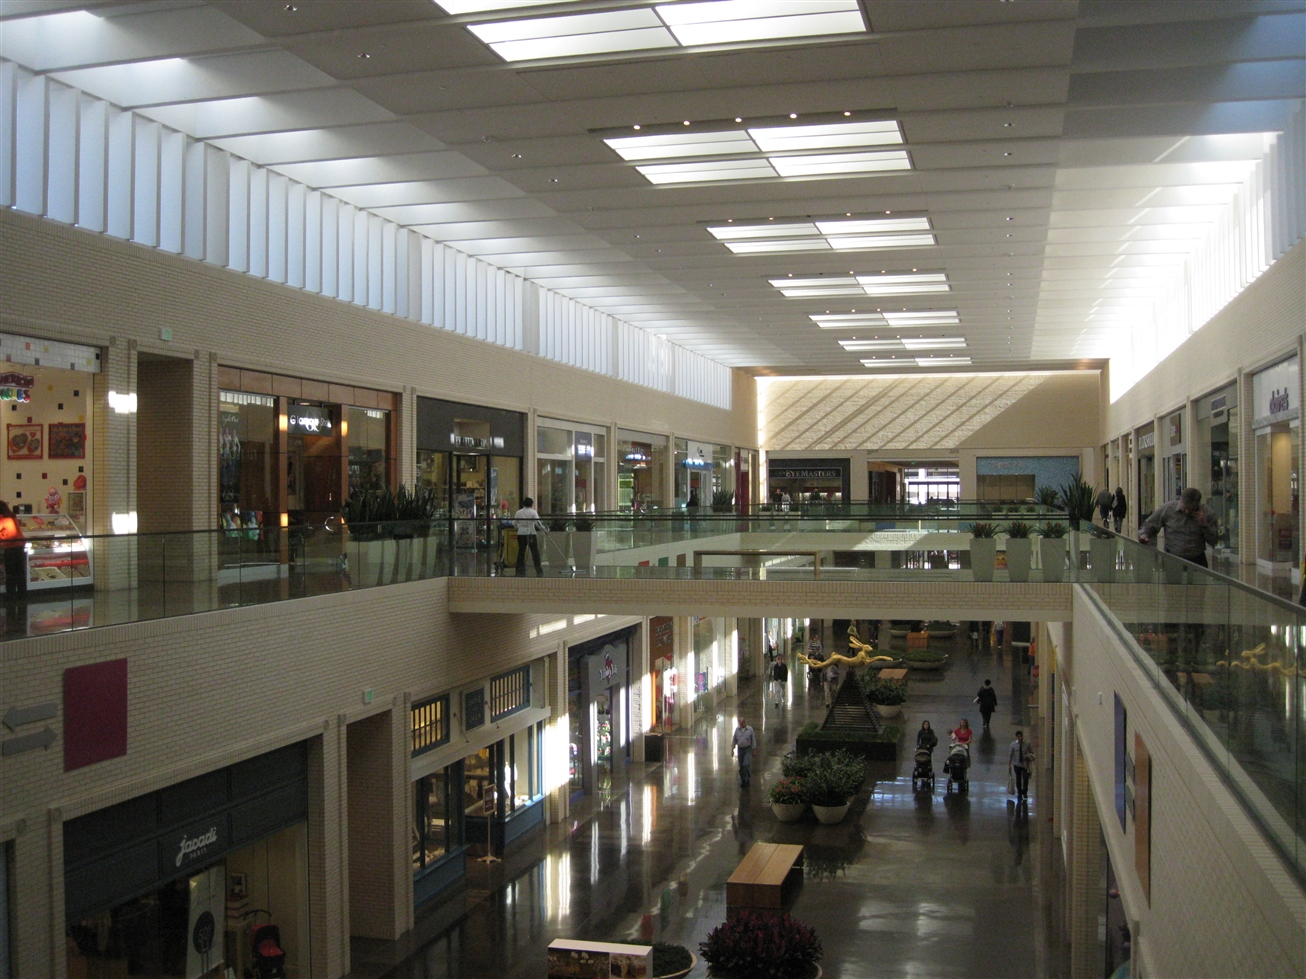 Northpark Center in Dallas, TX